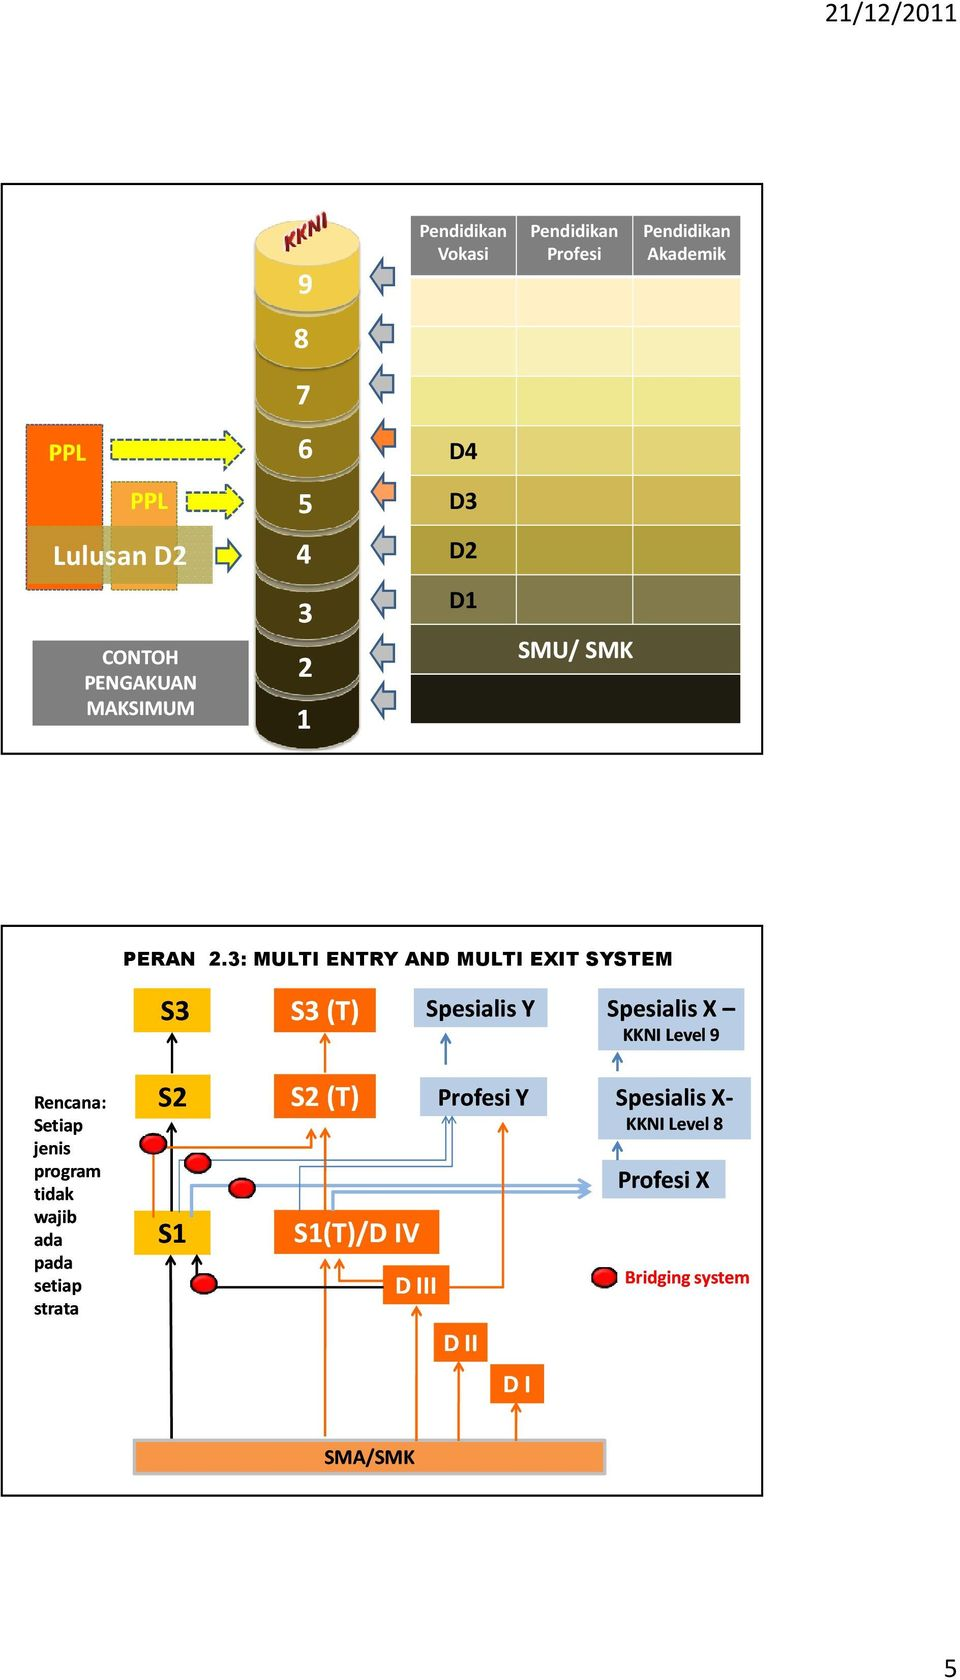 3: MULTI ENTRY AND MULTI EXIT SYSTEM S3 S3 (T) Spesialis Y Spesialis X KKNI Level 9 Rencana: Setiap jenis program tidak